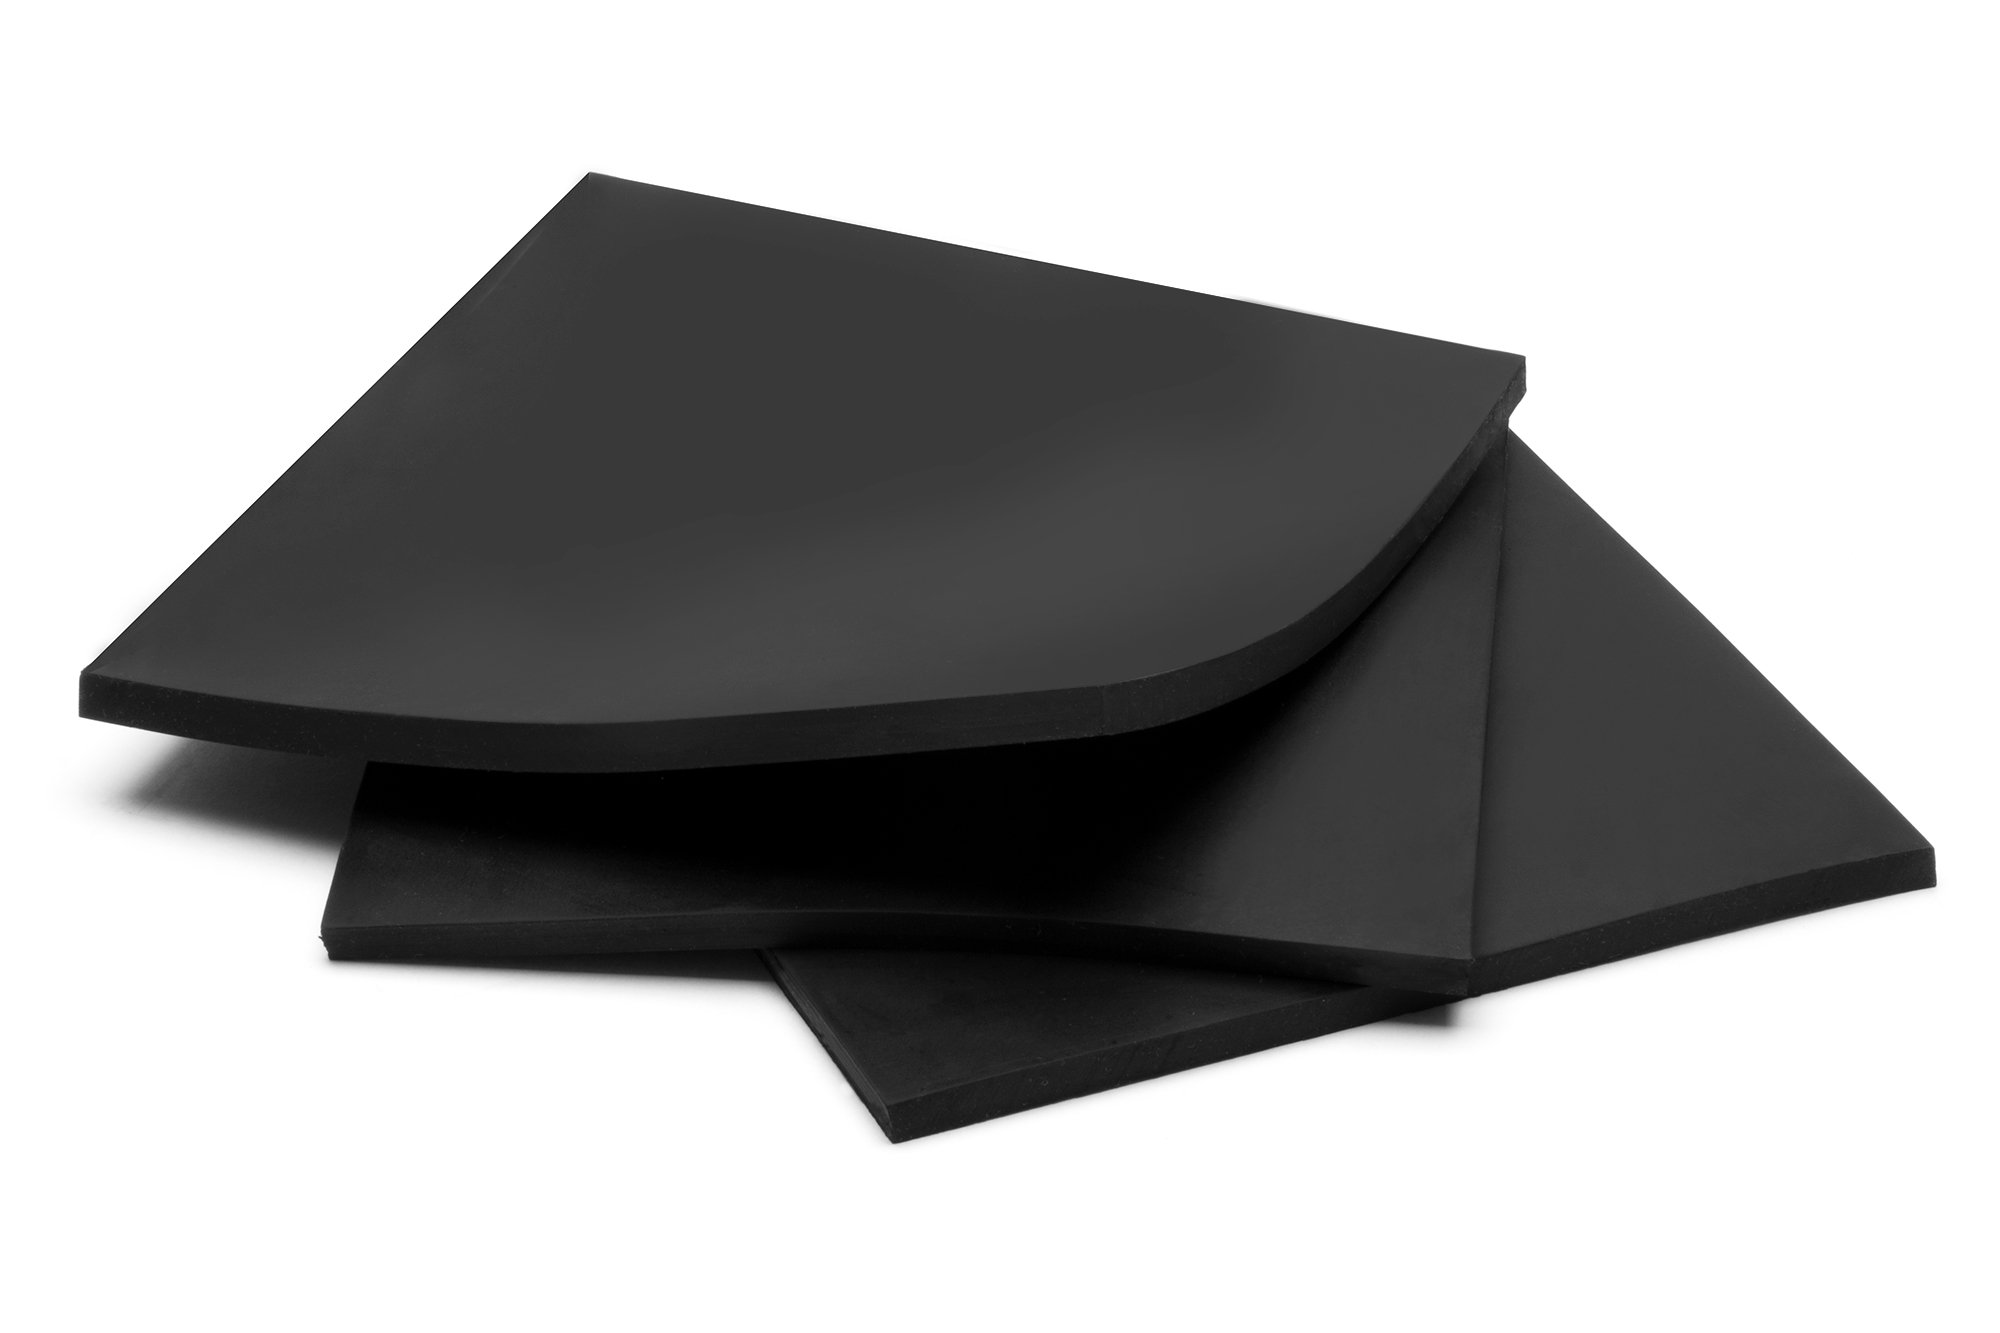 Rubber Sheets, Black, (Pack of 3) 6x6-Inch by 1/4 (+/-5%) High Grade Shore 60A Neoprene, Plumbing, Gaskets DIY Material, Supports, Leveling, Sealing, Bumpers, Protection, Abrasion, Flooring by EverestRubberCompany